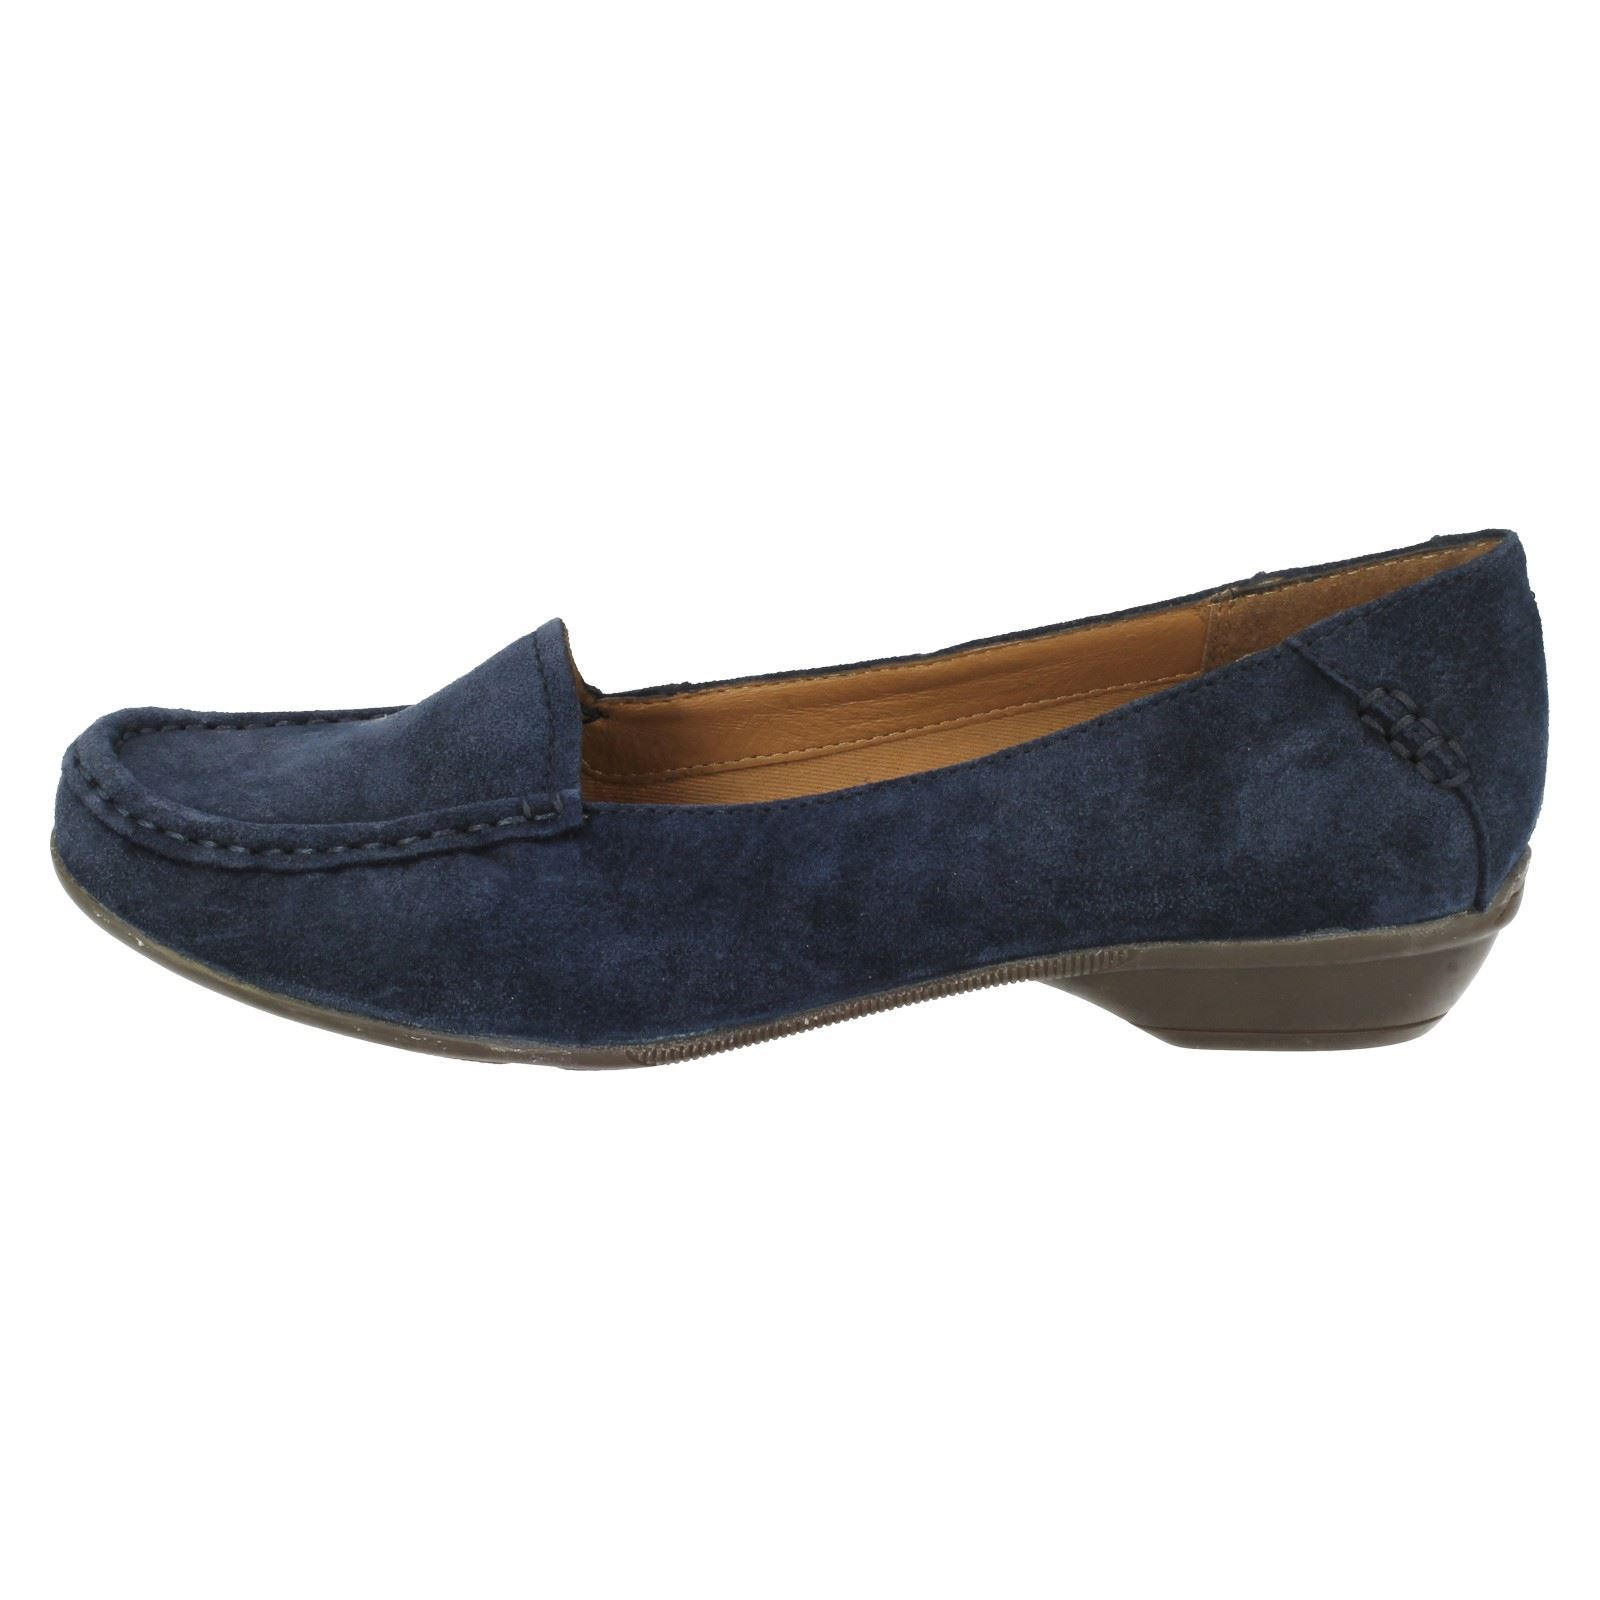 d6823c1f288 Ladies Clarks Loafer Heeled Shoes Gilded Opal Navy UK 6 D. About this  product. Picture 1 of 8  Picture 2 of 8  Picture 3 of 8 ...